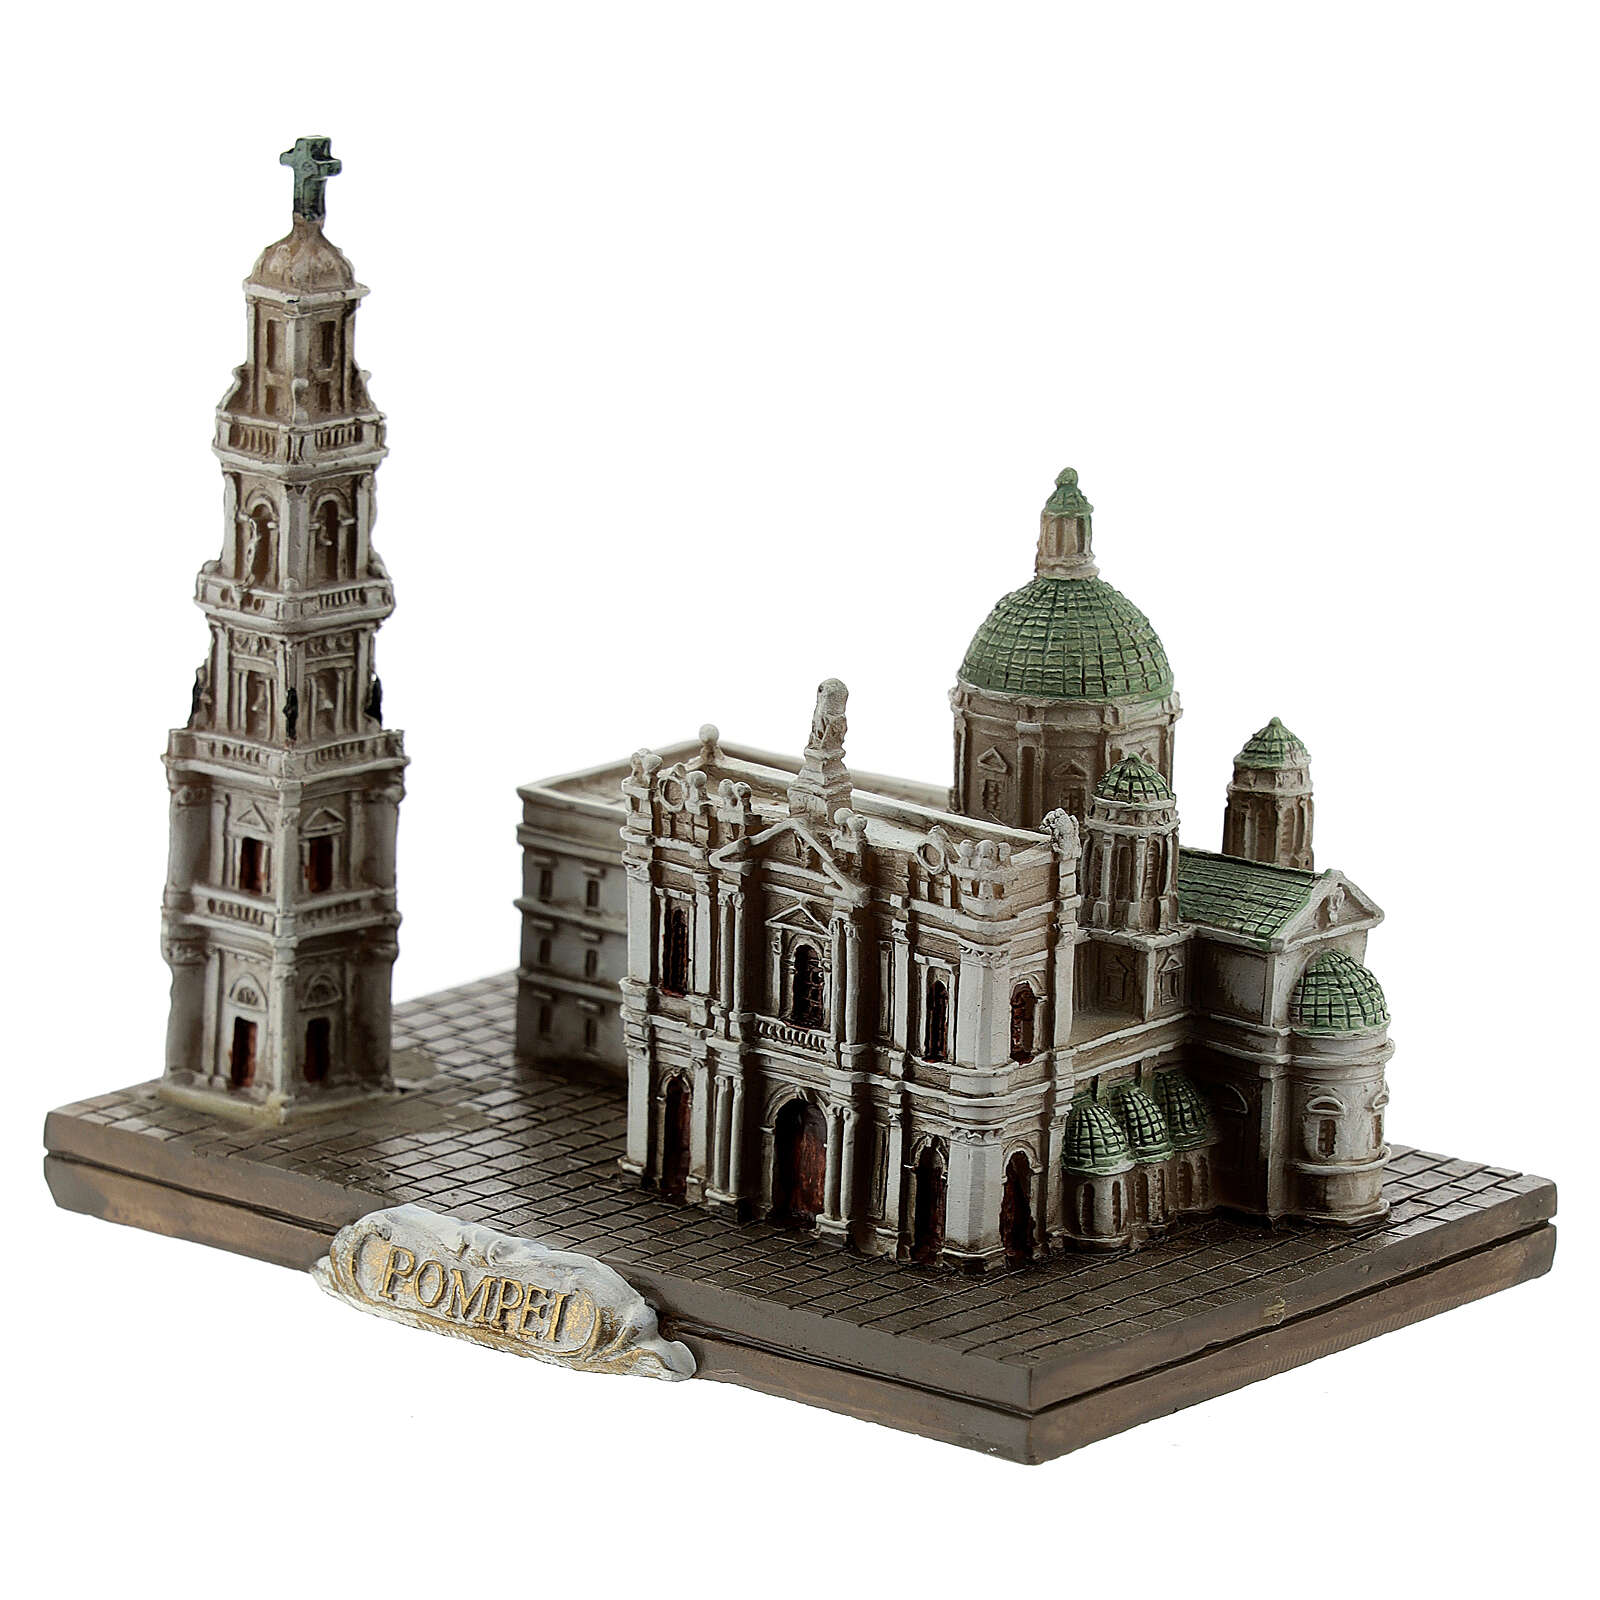 Miniature of the Shrine of the Blessed Virgin of the Rosary of Pompei resin 8x9.5x6 cm 4